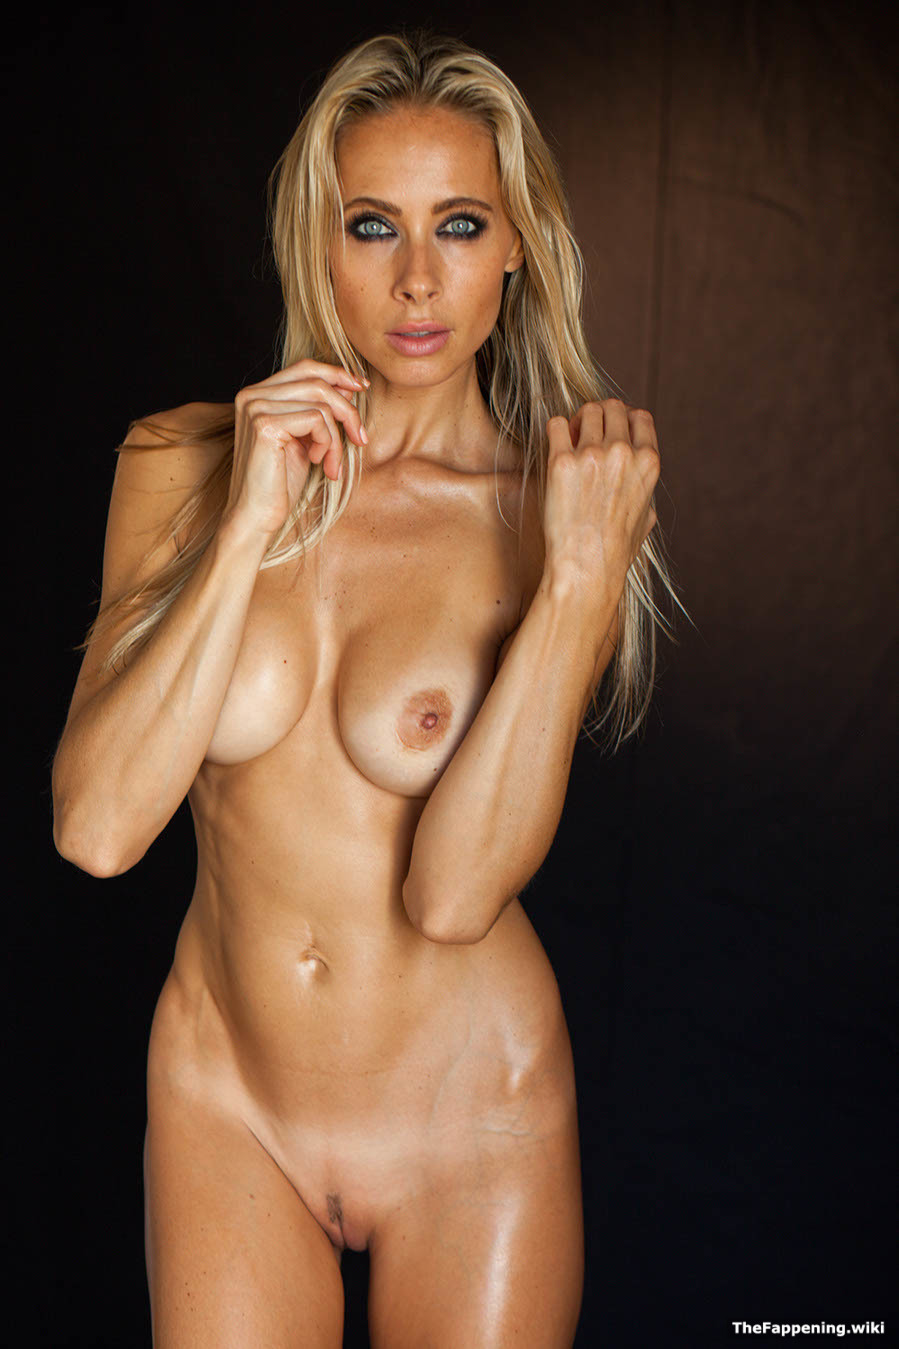 Jesse Golden Nude Pics  Vids - The Fappening-9036